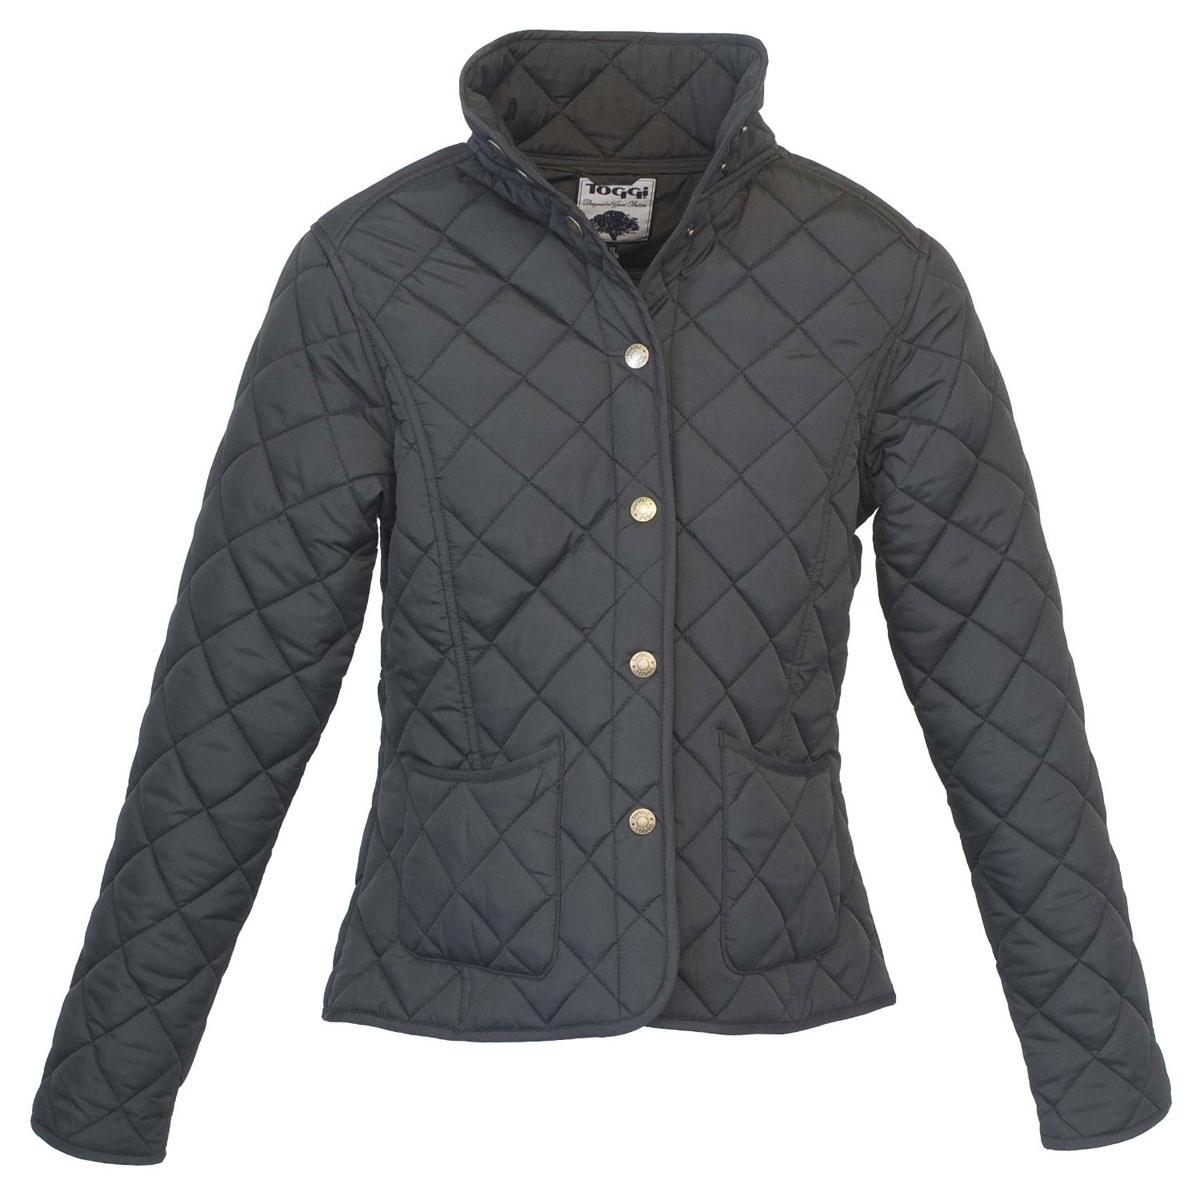 Toggi Sandown Ladies Diamond Quilted Jacket - Black | Uttings.co.uk